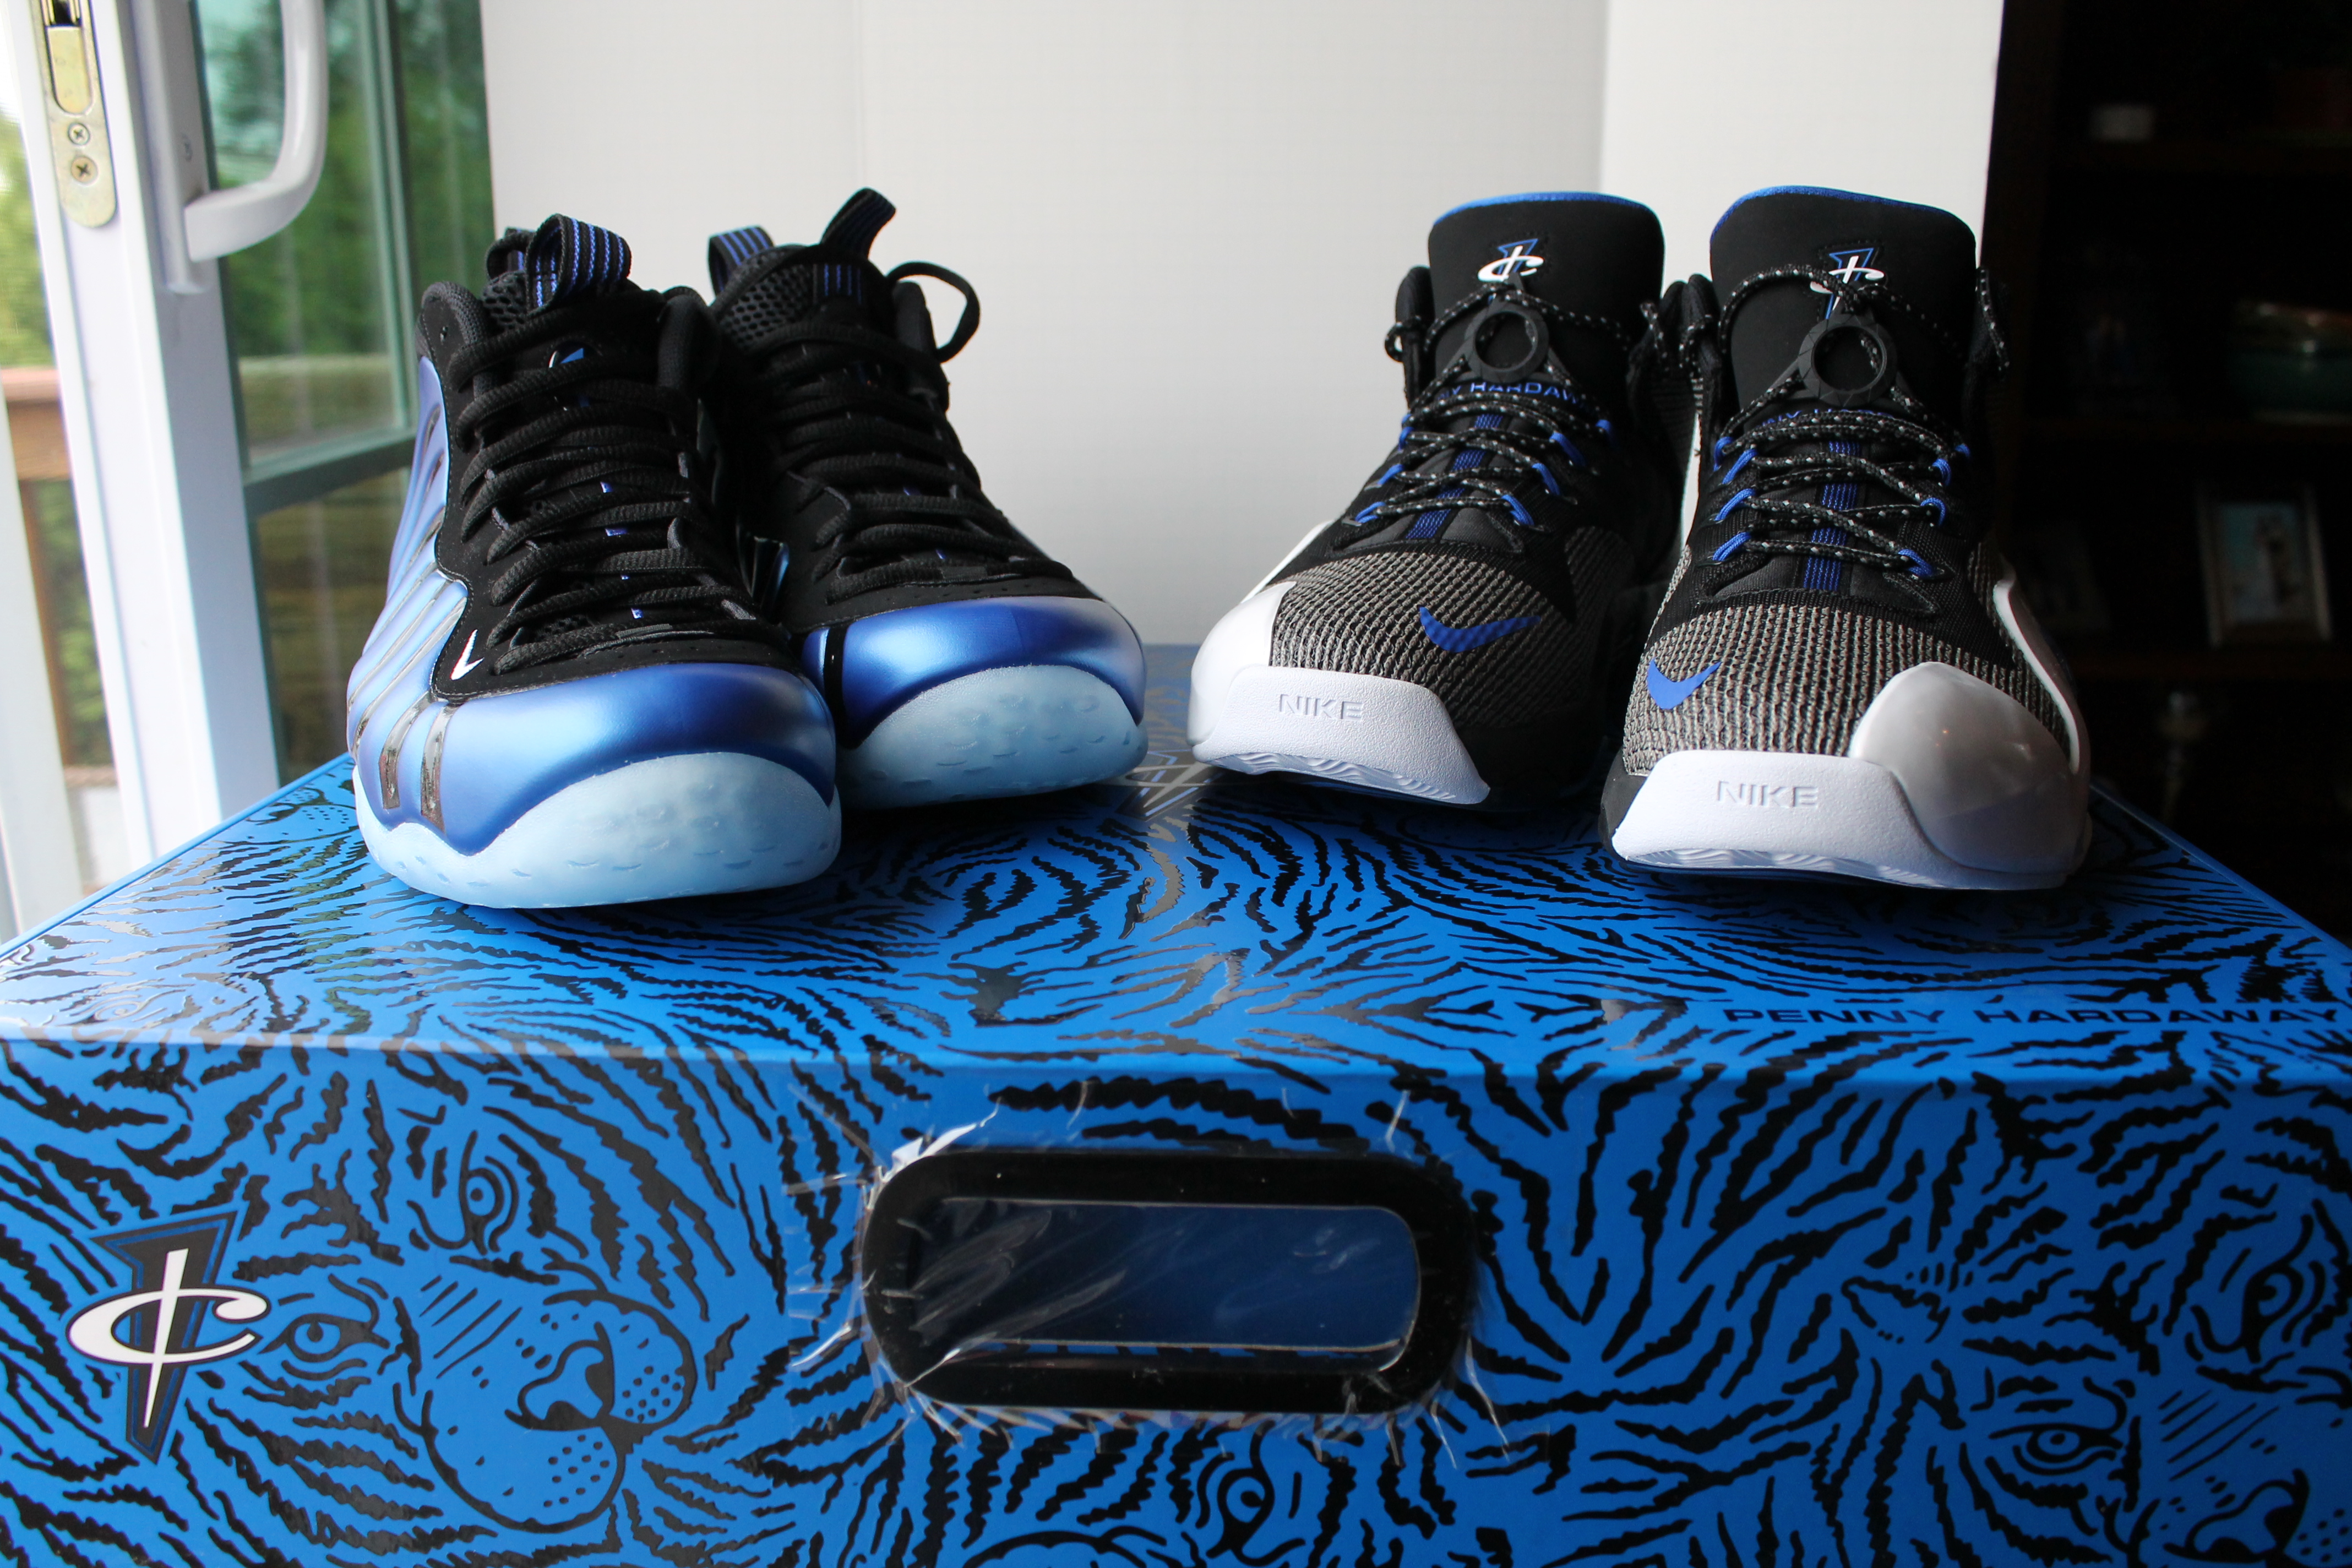 bfdc3c2e6cf Nike Air Penny Pack QS - Sharpie Pack